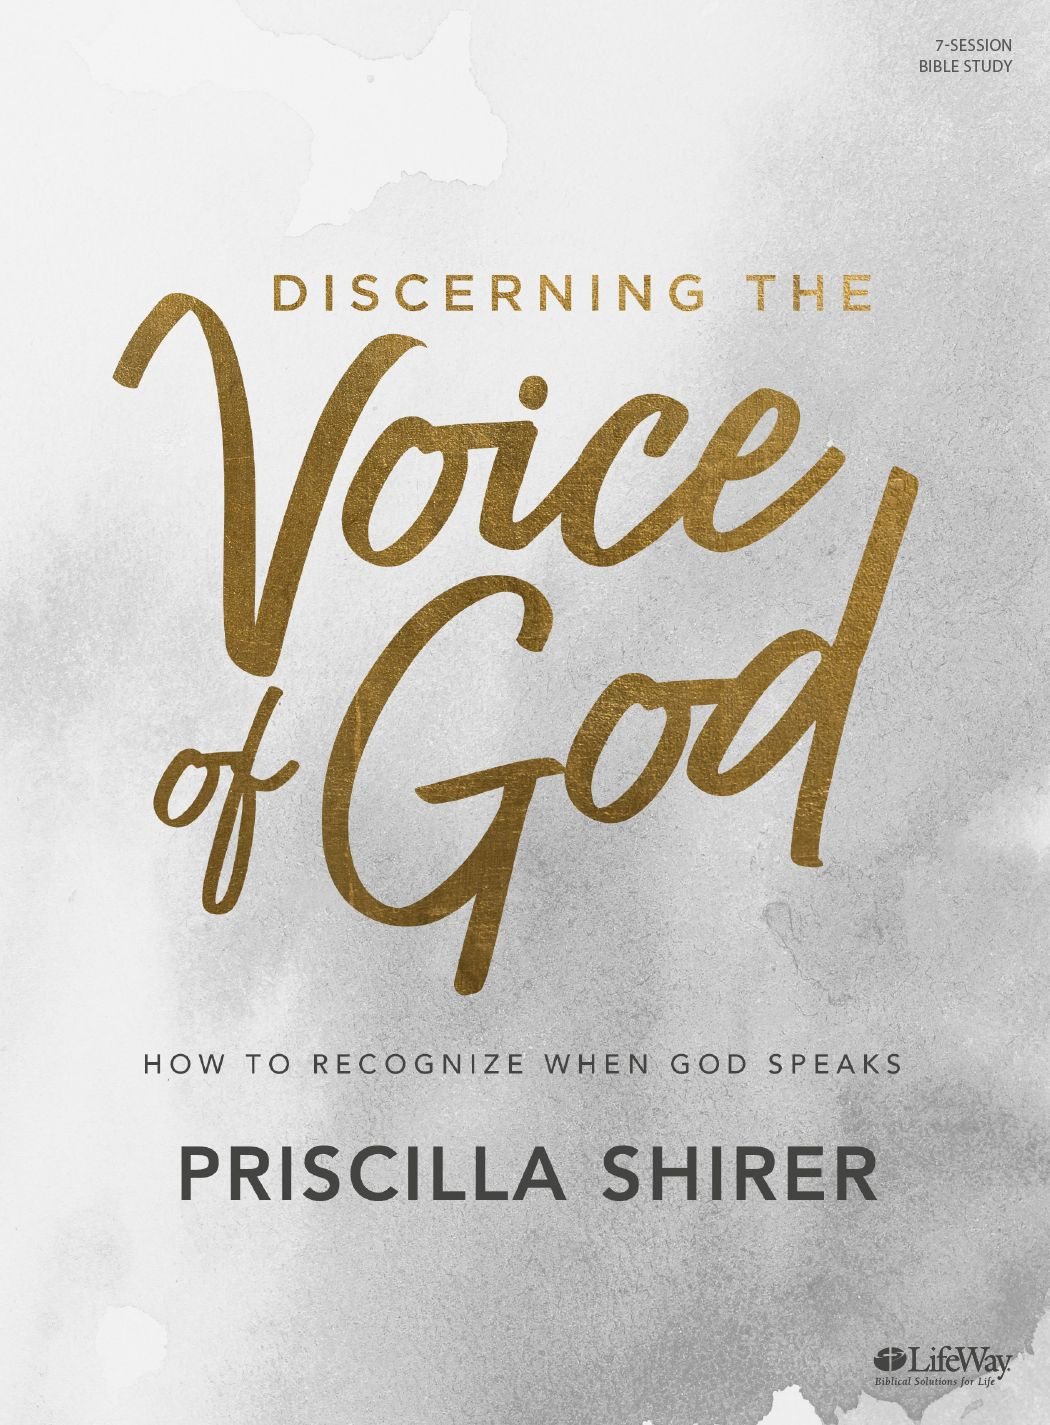 The Voice of God Bible Study by Priscilla Shirer